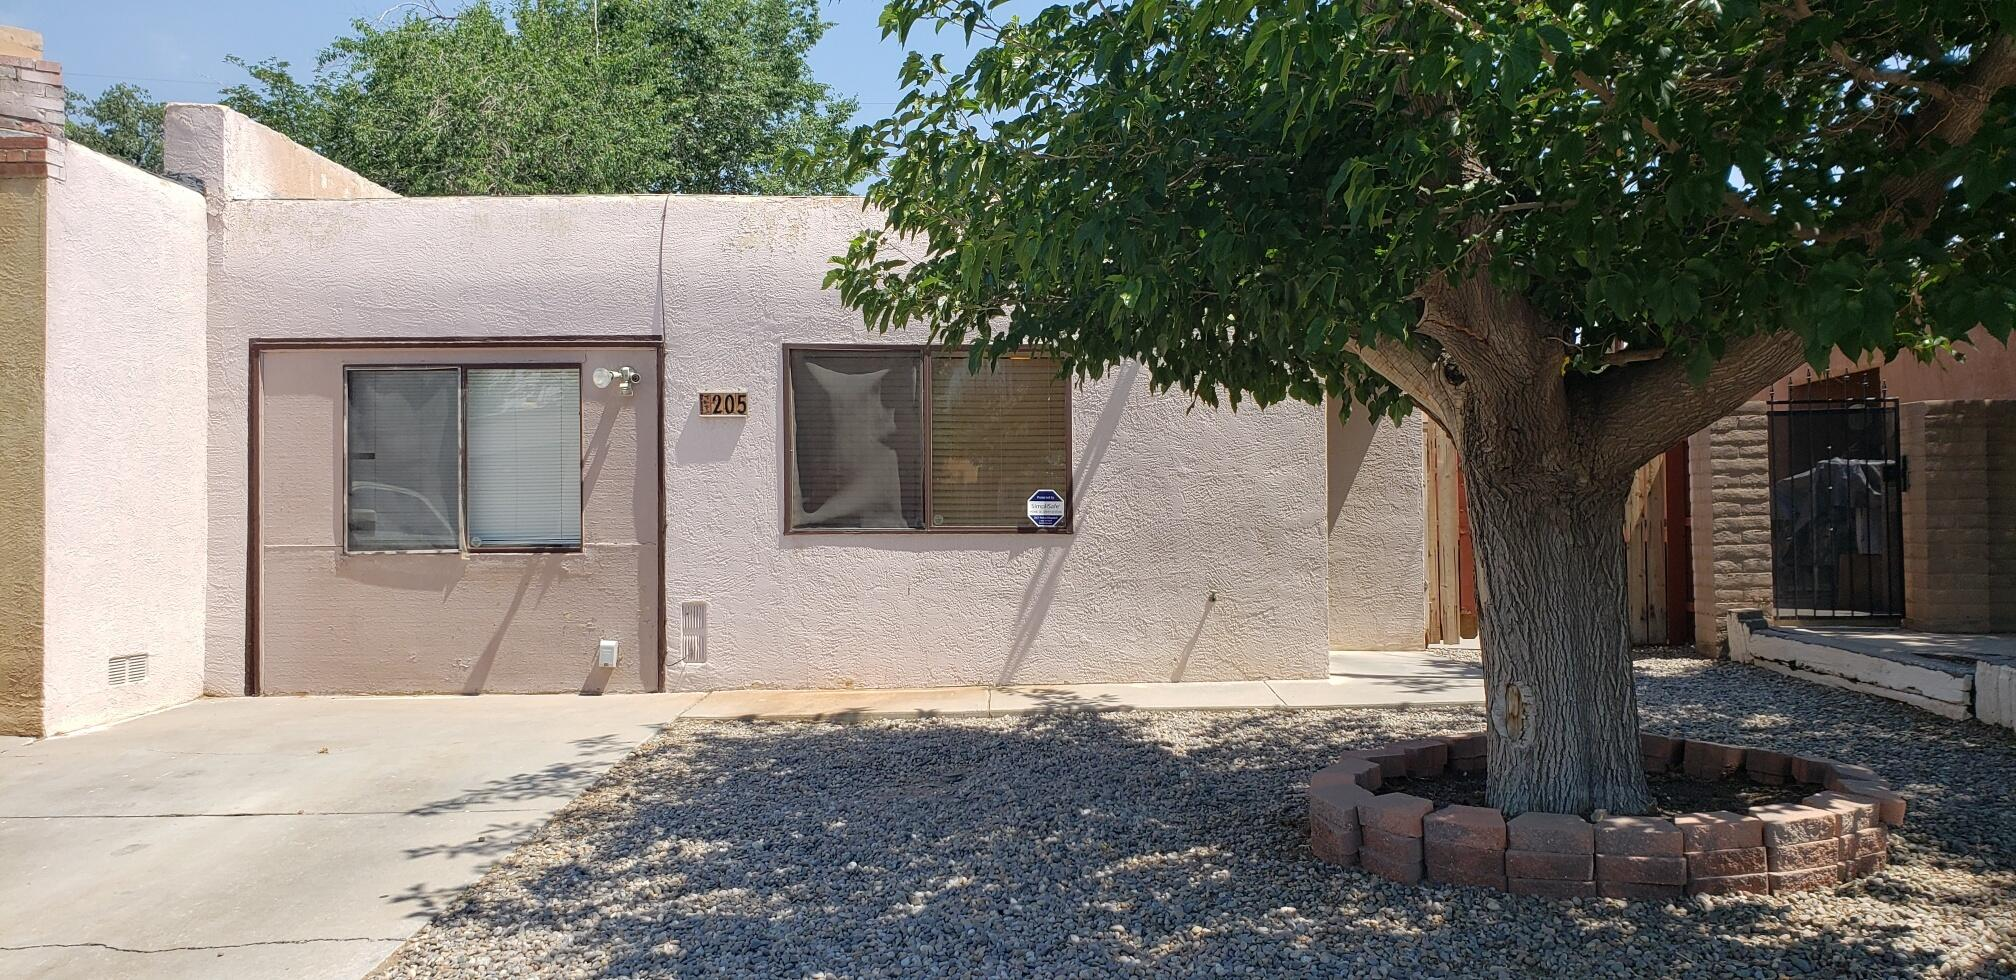 Cheaper than Rent! This  spacious 3 Bedroom, 2 Bathroom Town Home is centrally located in the North Valley. Tile and Laminate Flooring throughout. Spacious Kitchen with Bar which has enough space for 3 to 4 Barstools. The Pellet Stove that comes with the Home nicely heats the open Kitchen, Dining and Living Room areas. There is a sizable Back Yard for those cookouts and also has a large dog run along the side of the house. All Appliances are included. No HOA. Seller offers $1,000 towards paint or closing costs with acceptable offer. Selling as is. Make an appointment with your Realtor today.